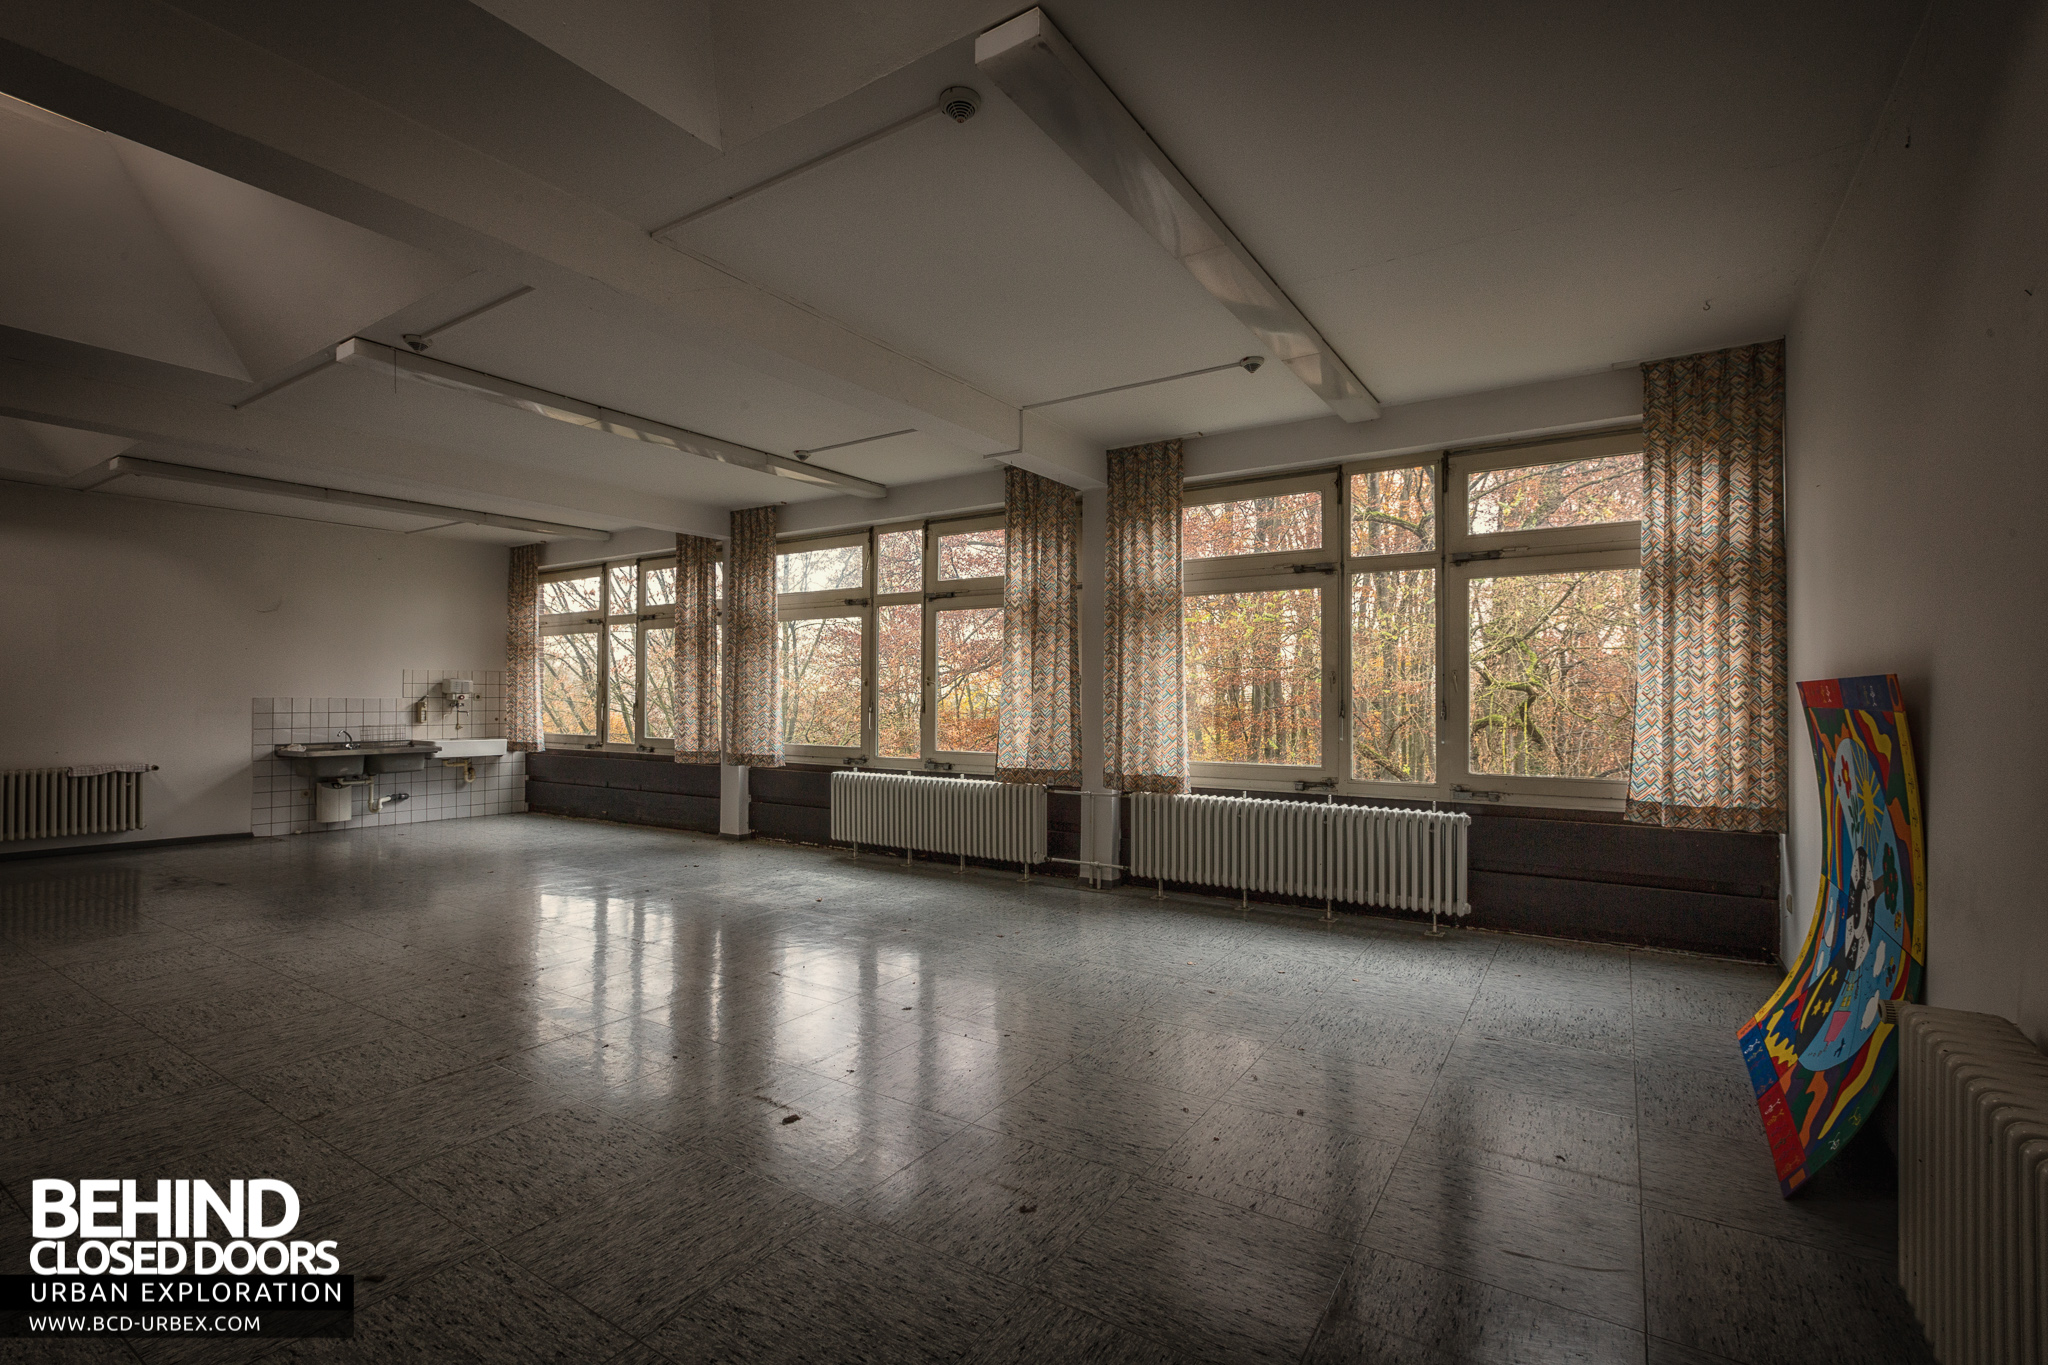 Psychiatrie V Abandoned Hospital Germany 187 Urbex